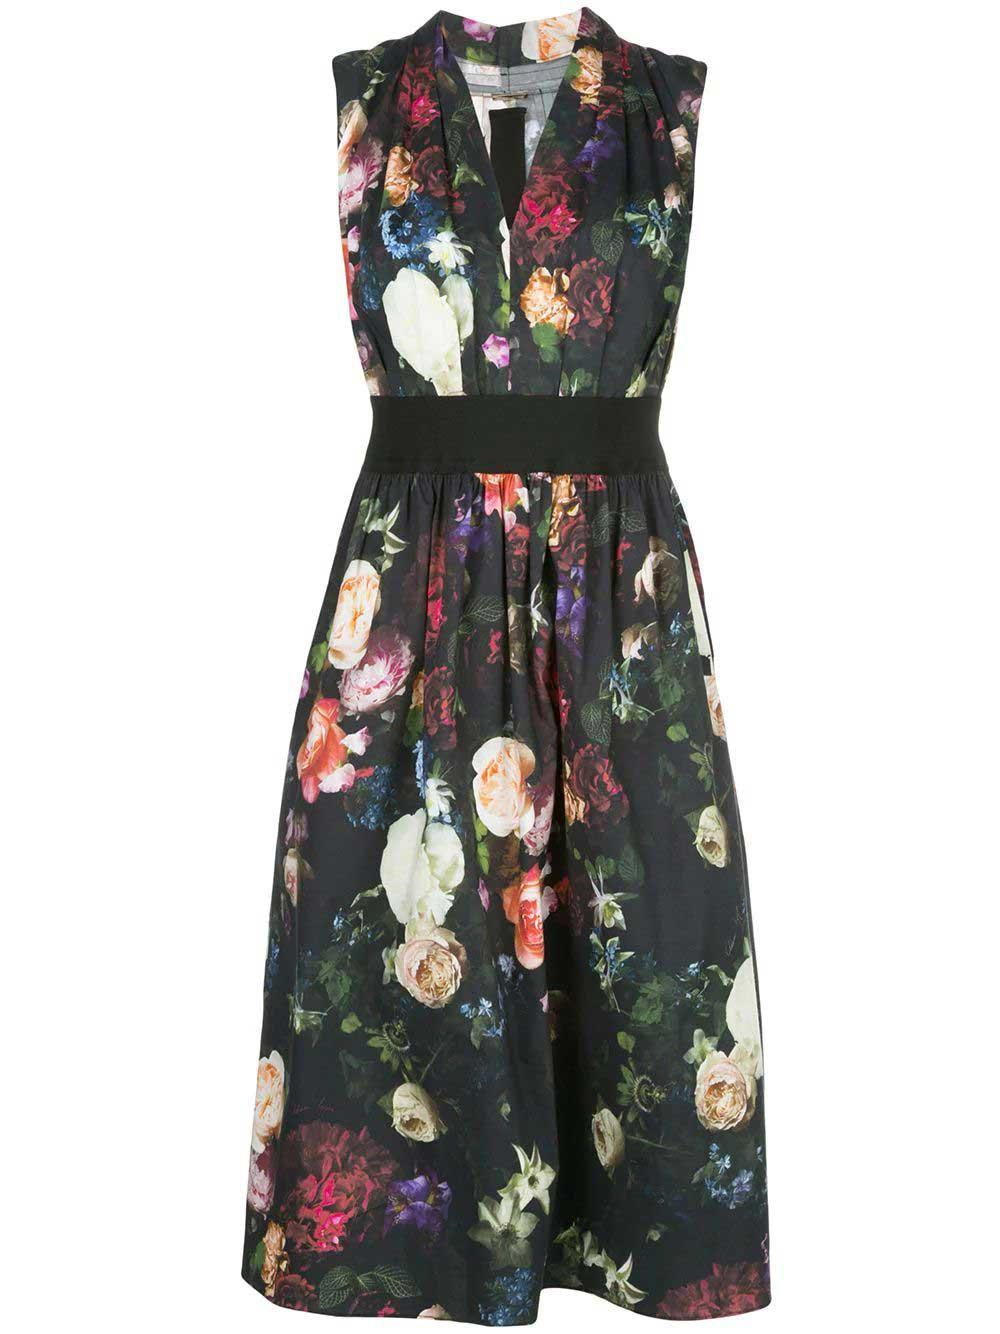 Sleeveless Floral Print Gathered Waist Dress